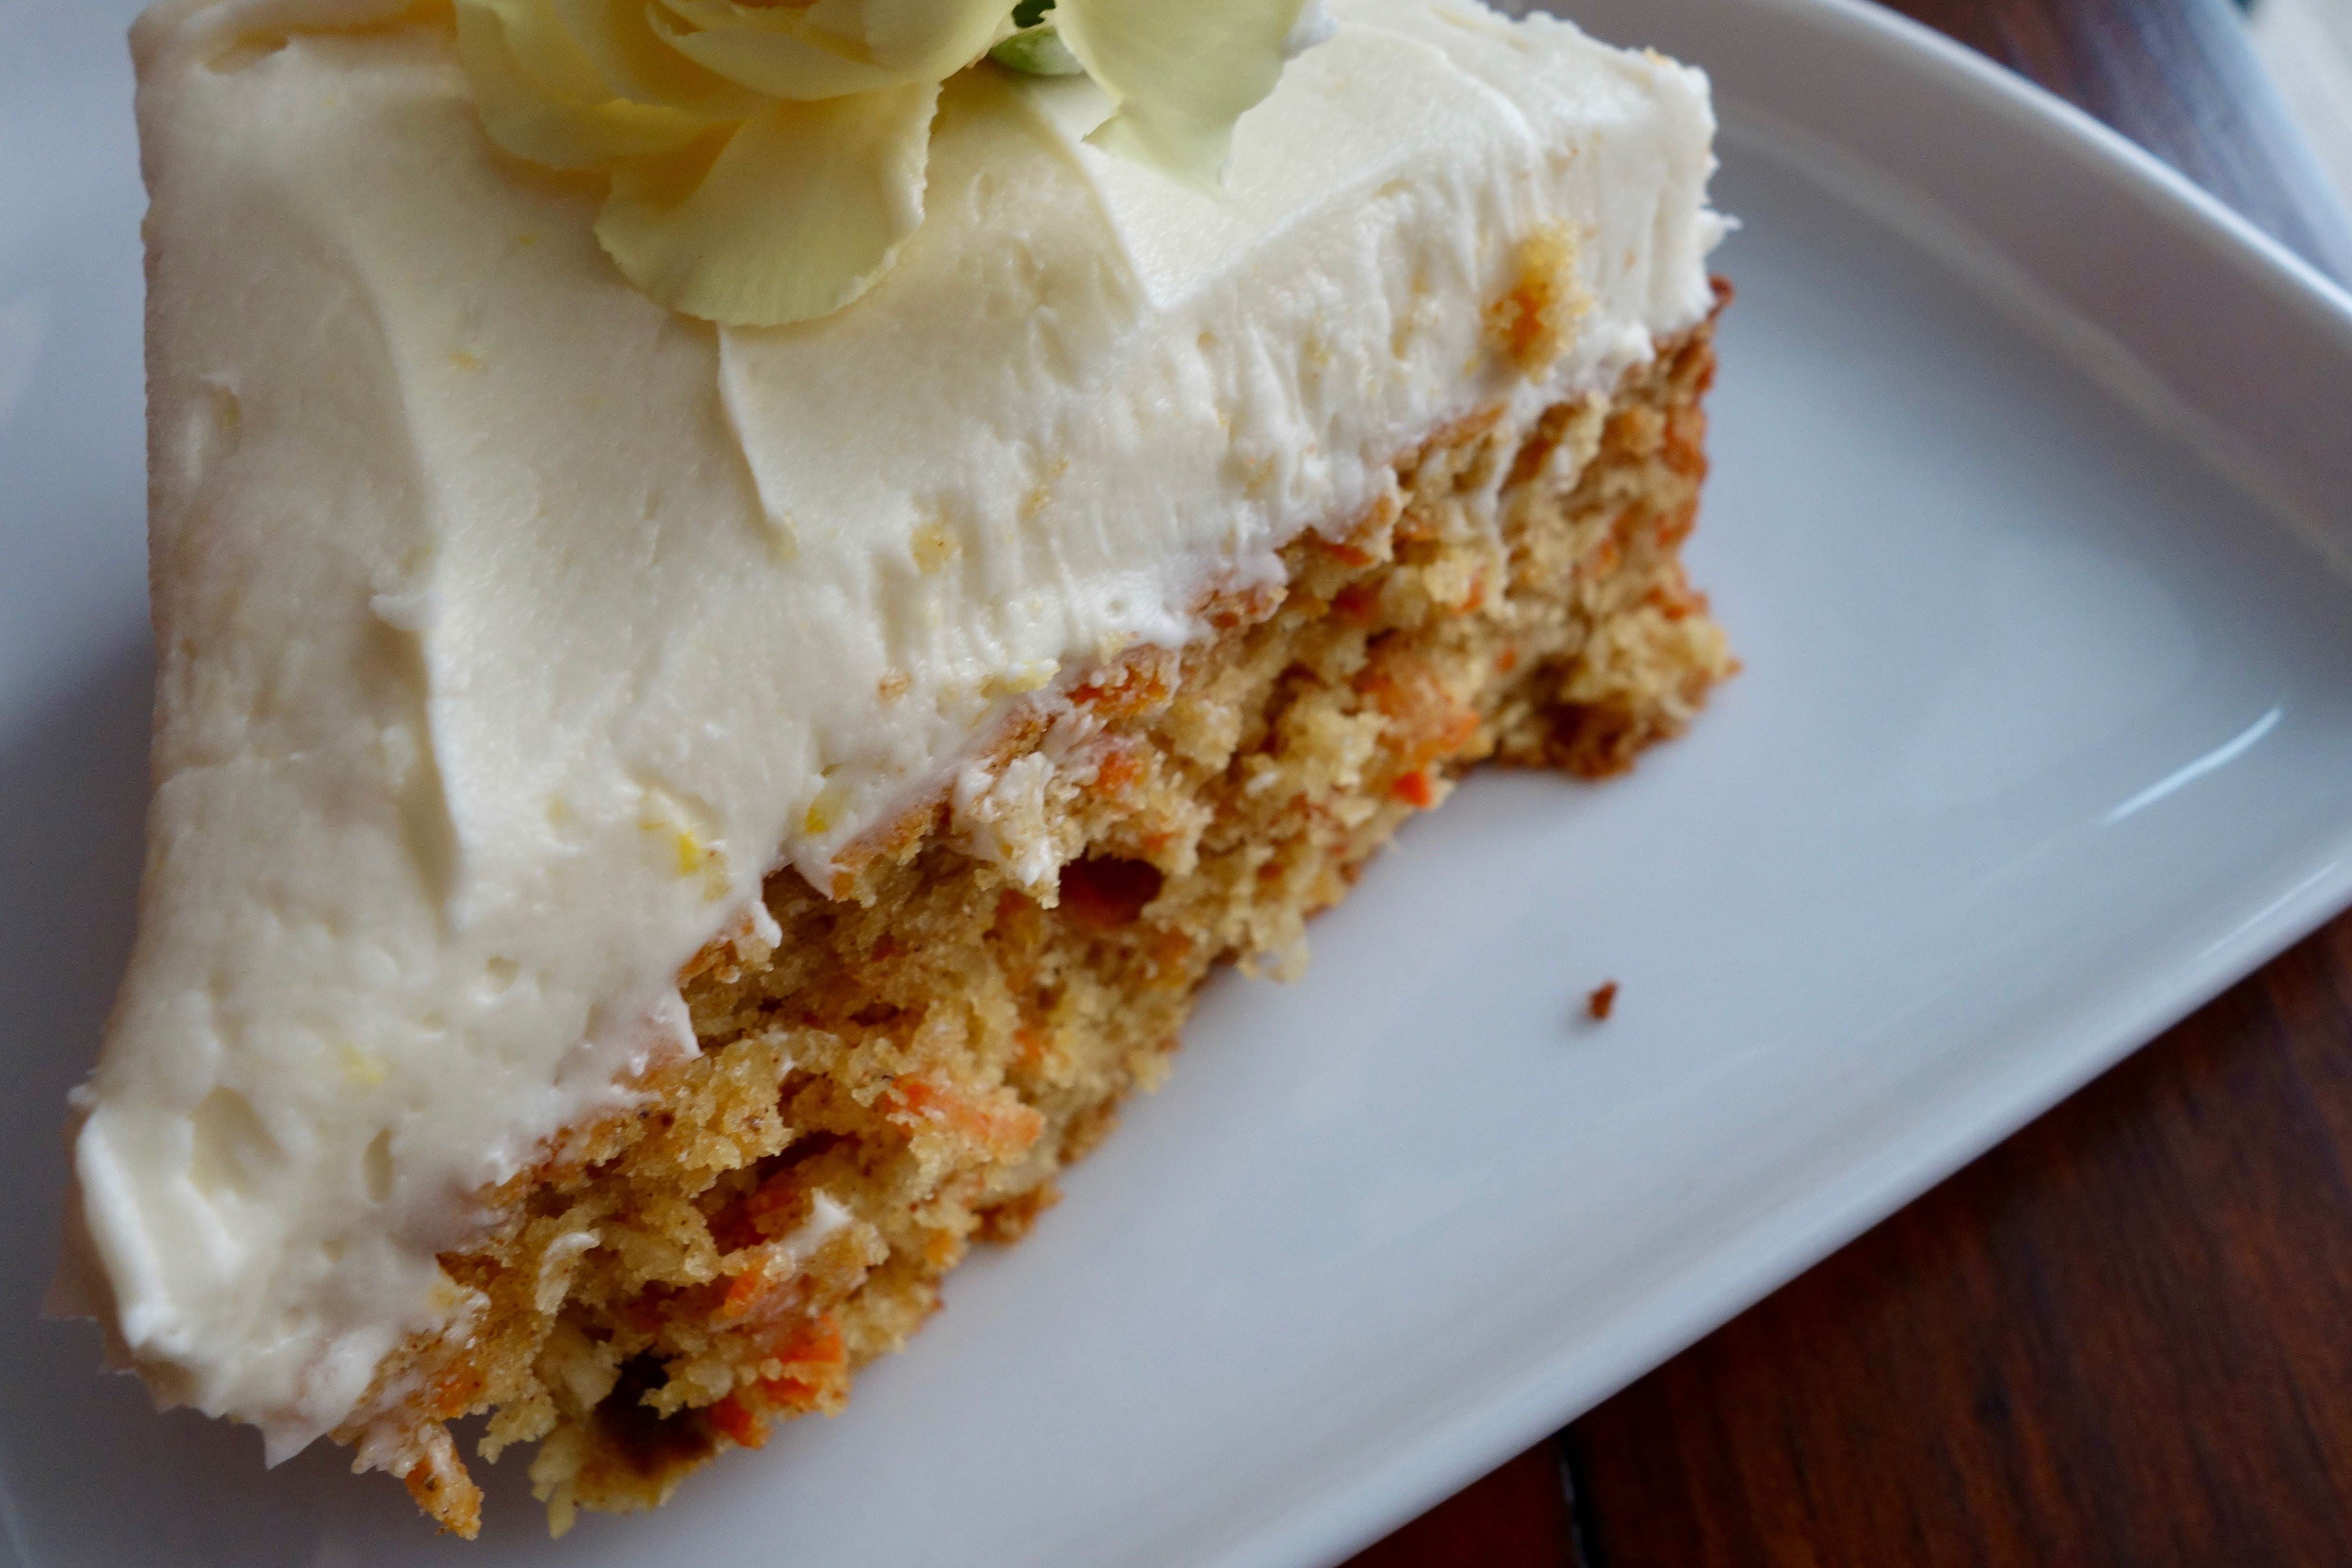 Olive Oil Carrot Cake with Lemon White Chocolate Buttercream